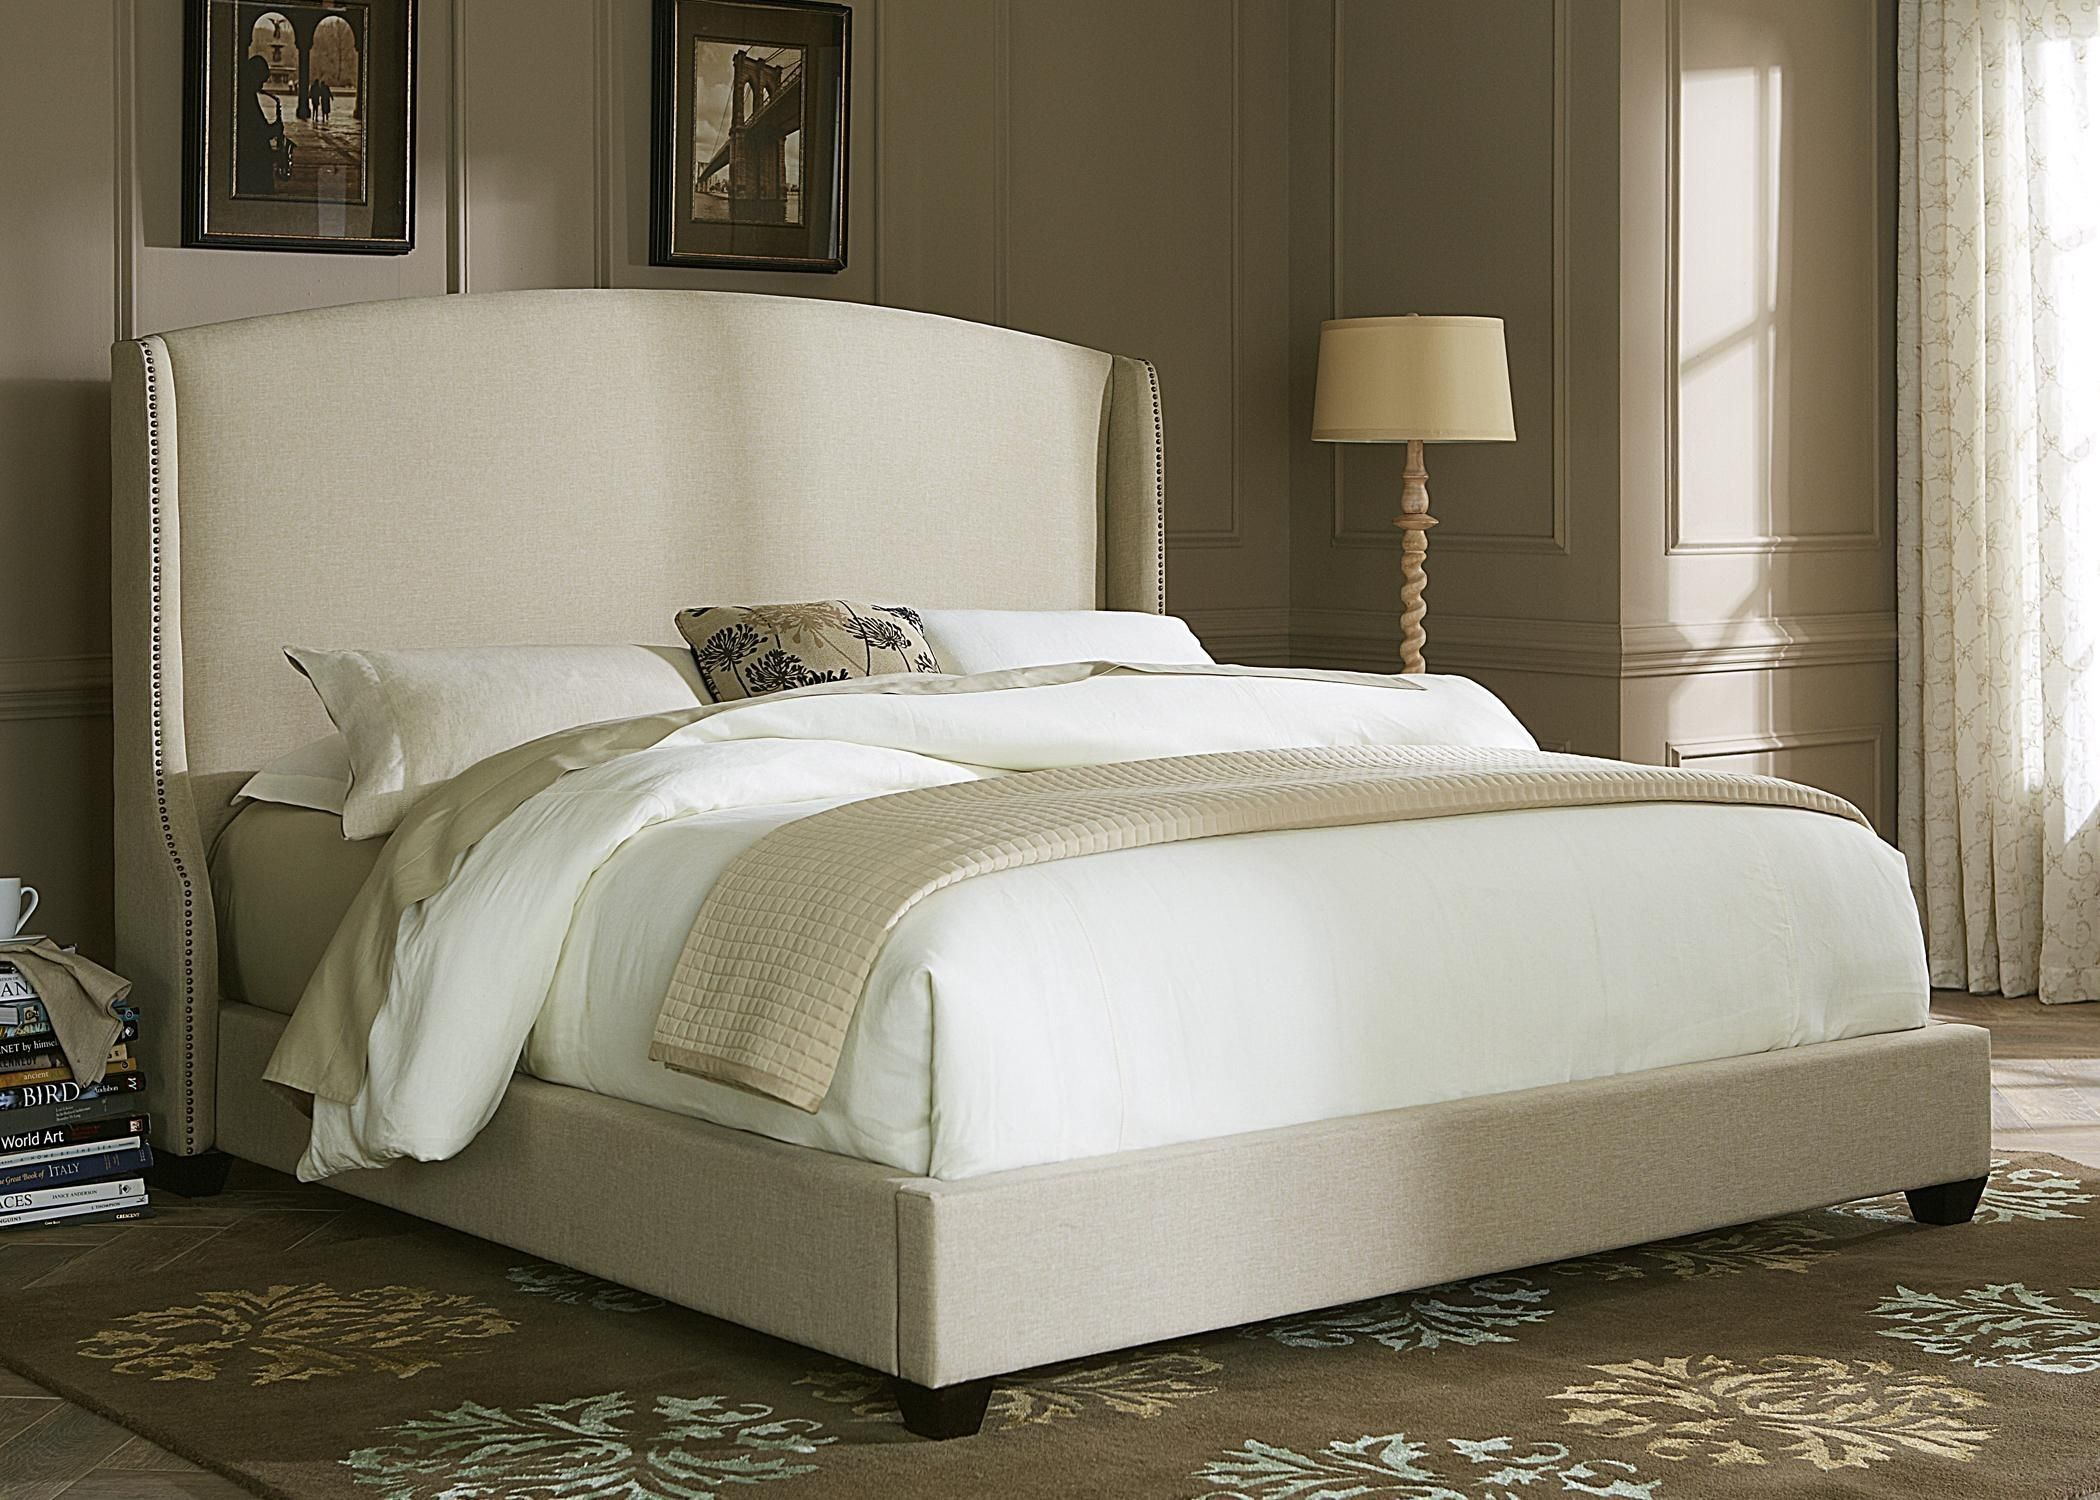 Beautiful Upholstered Bed Frame and Headboard Liberty